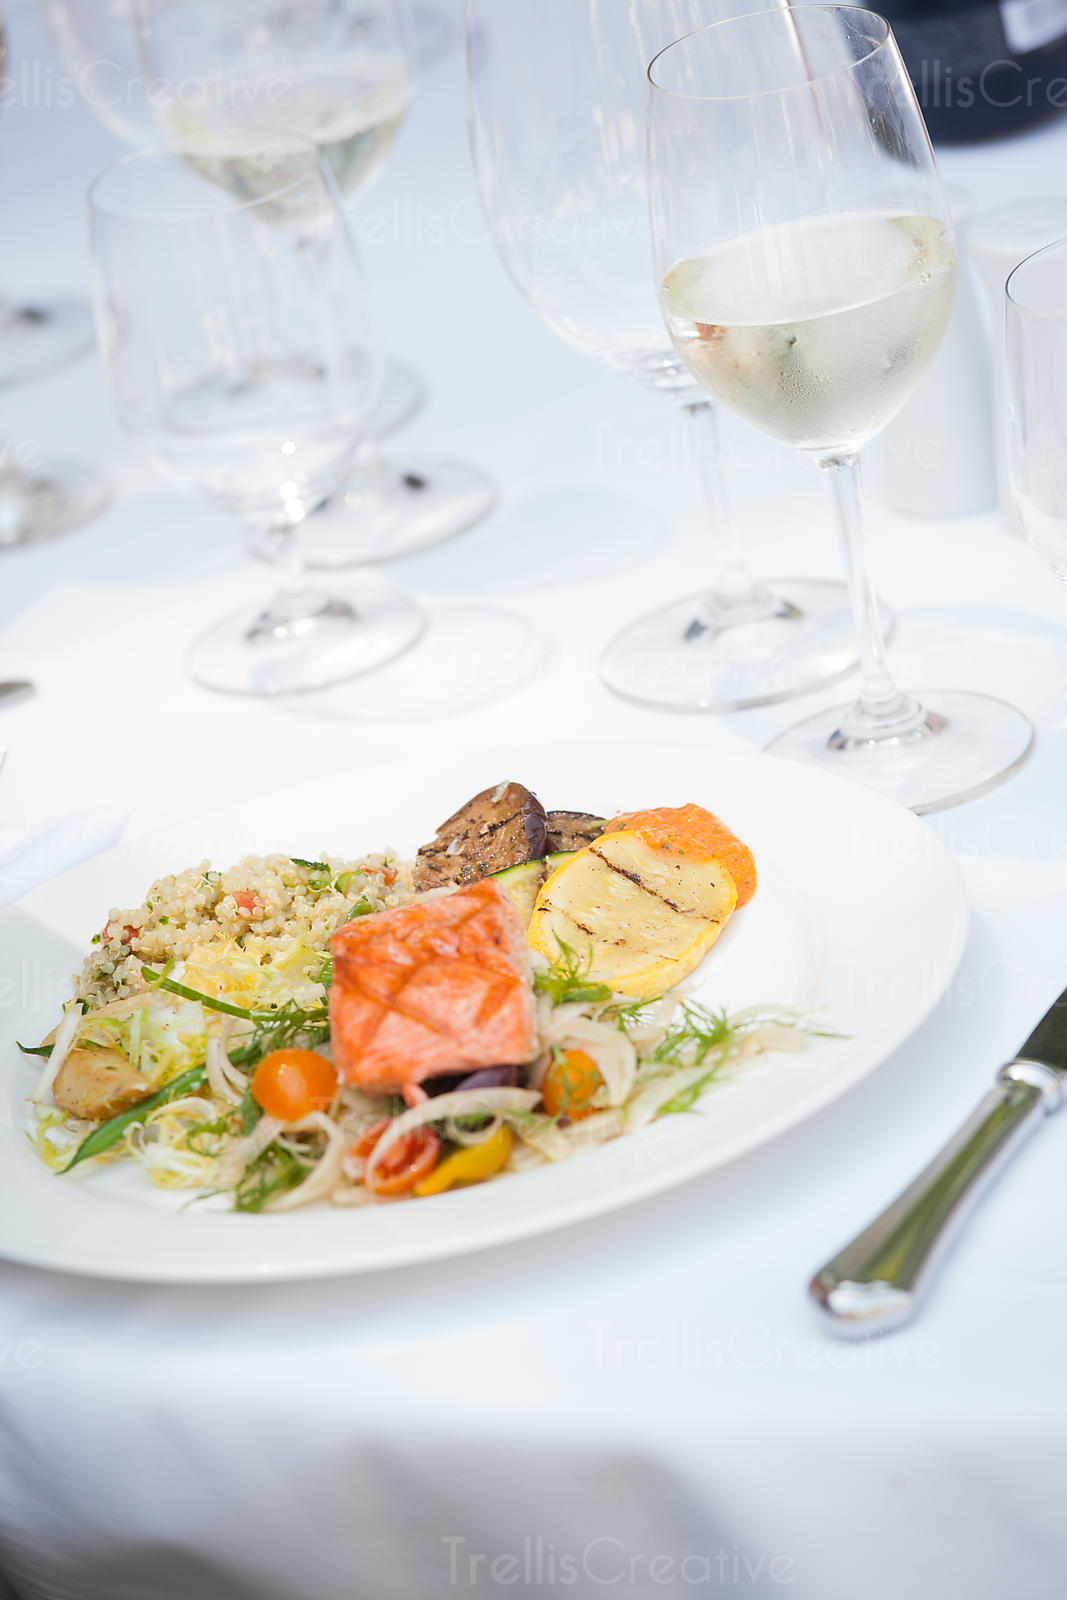 Delicious food with white wine on table